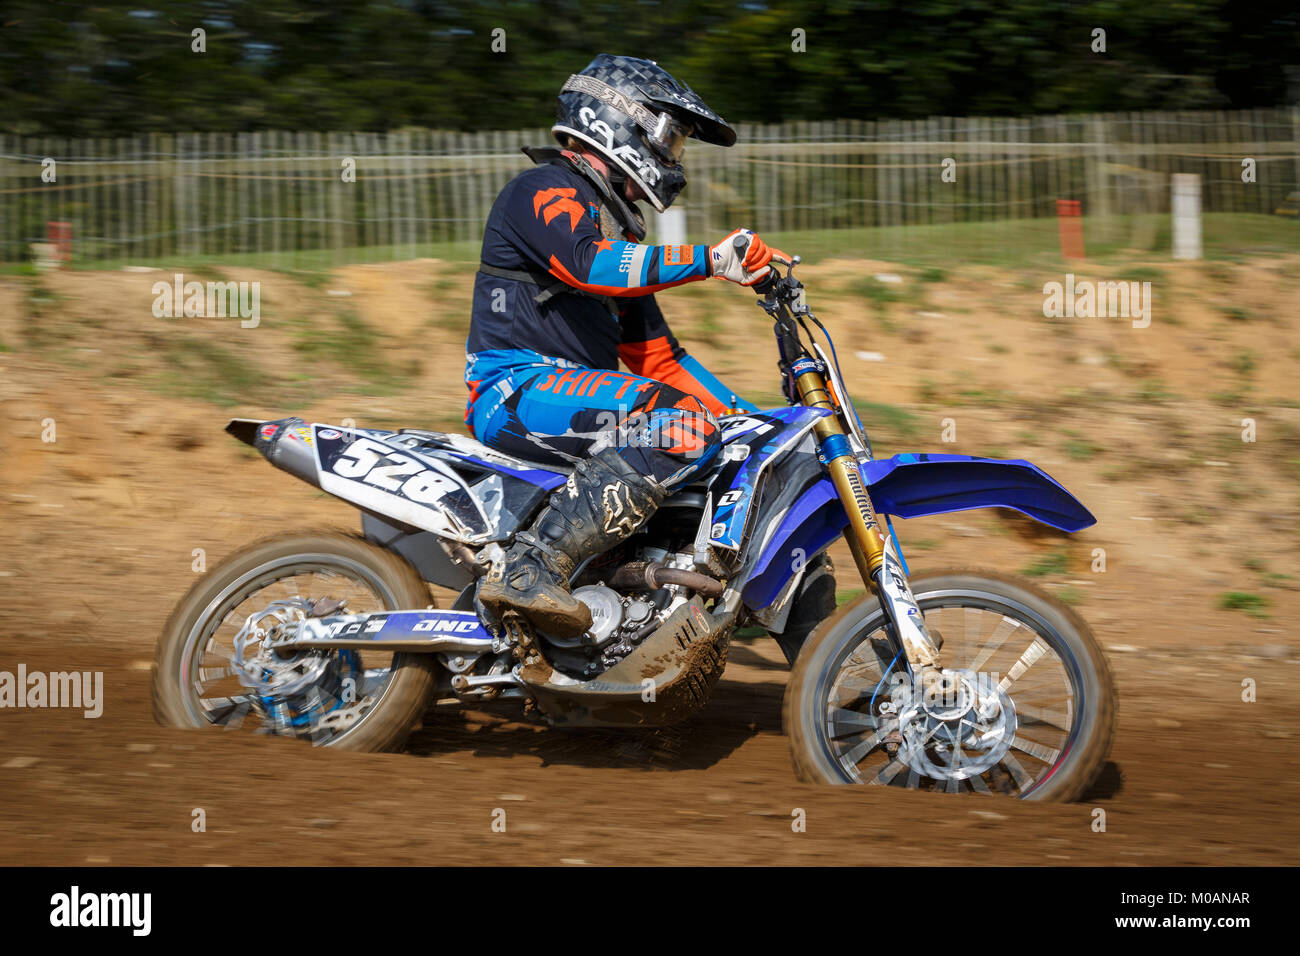 Thomas Clarke on the Yamaha 250 at the NGR & ACU Eastern EVO Championships, Cadders Hill, Lyng, Norfolk, UK. - Stock Image